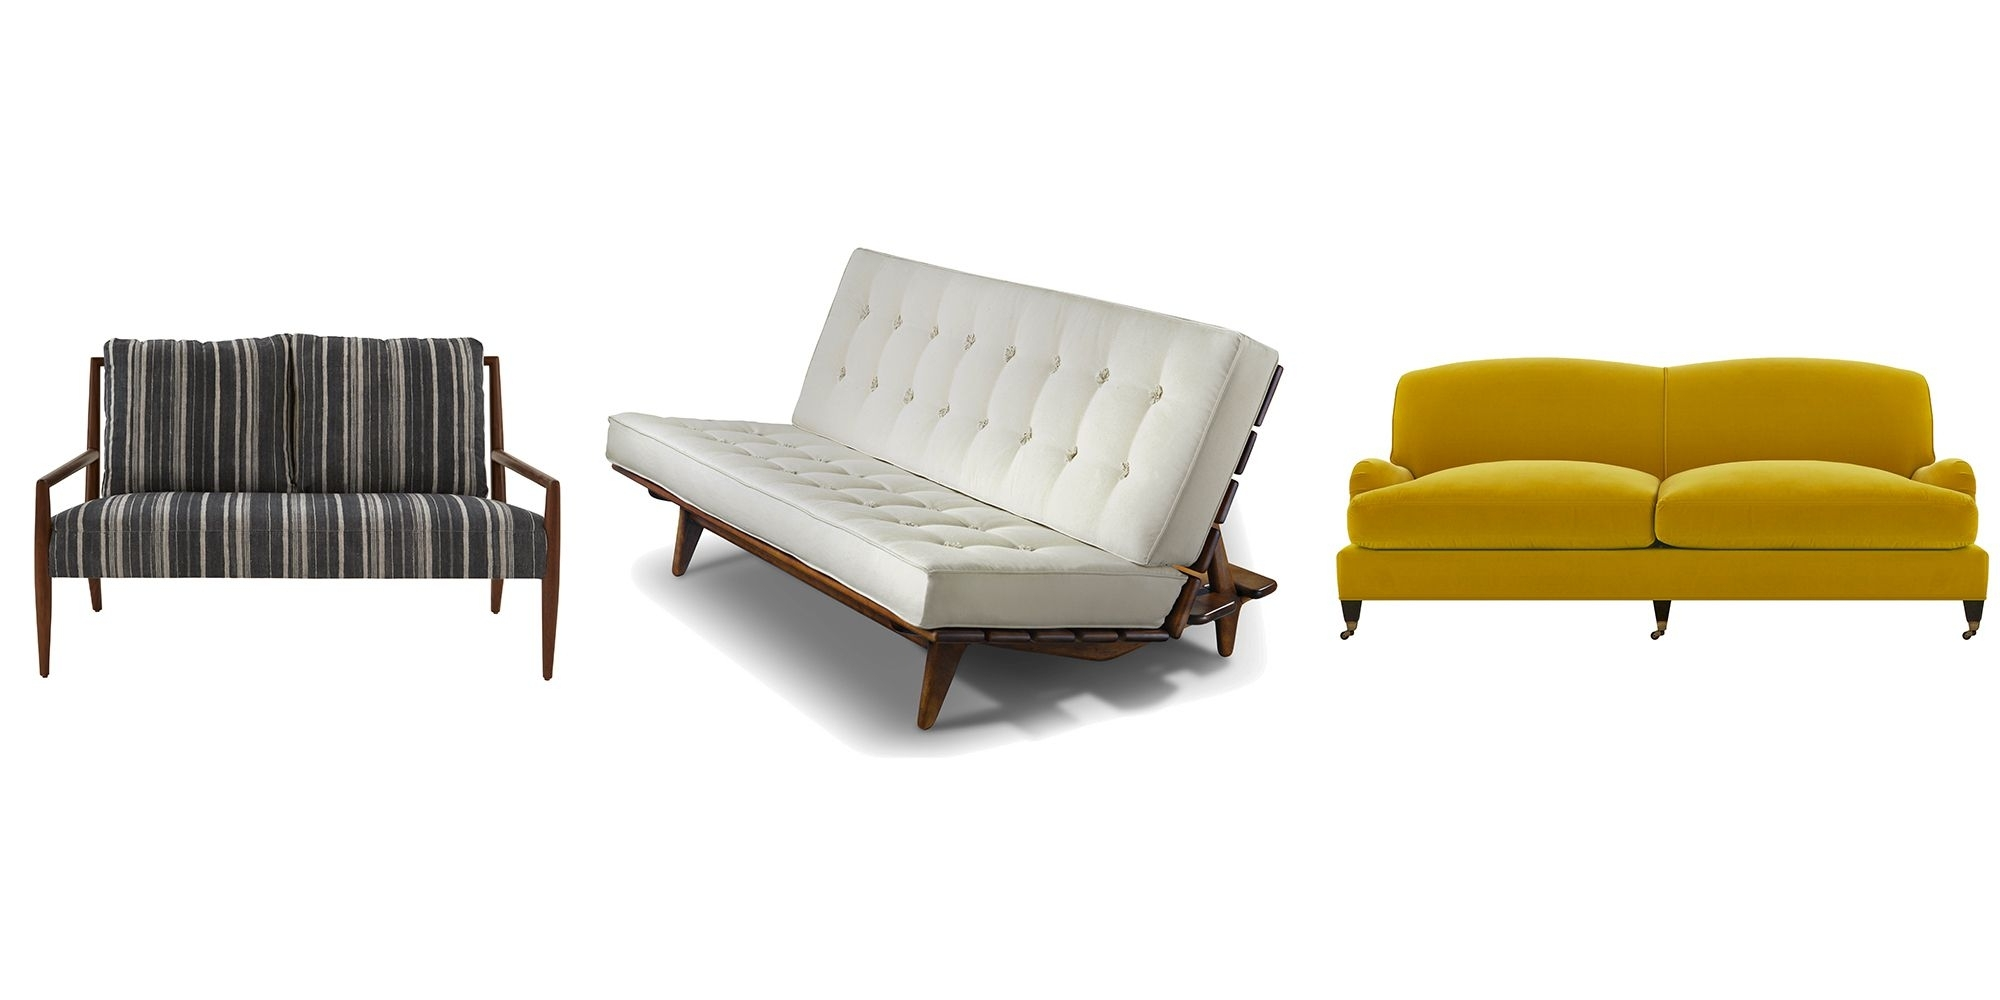 Most Popular Apartment Sofas Intended For 16 Best Apartment Size Sofas – Couches For Small Apartments (View 10 of 15)